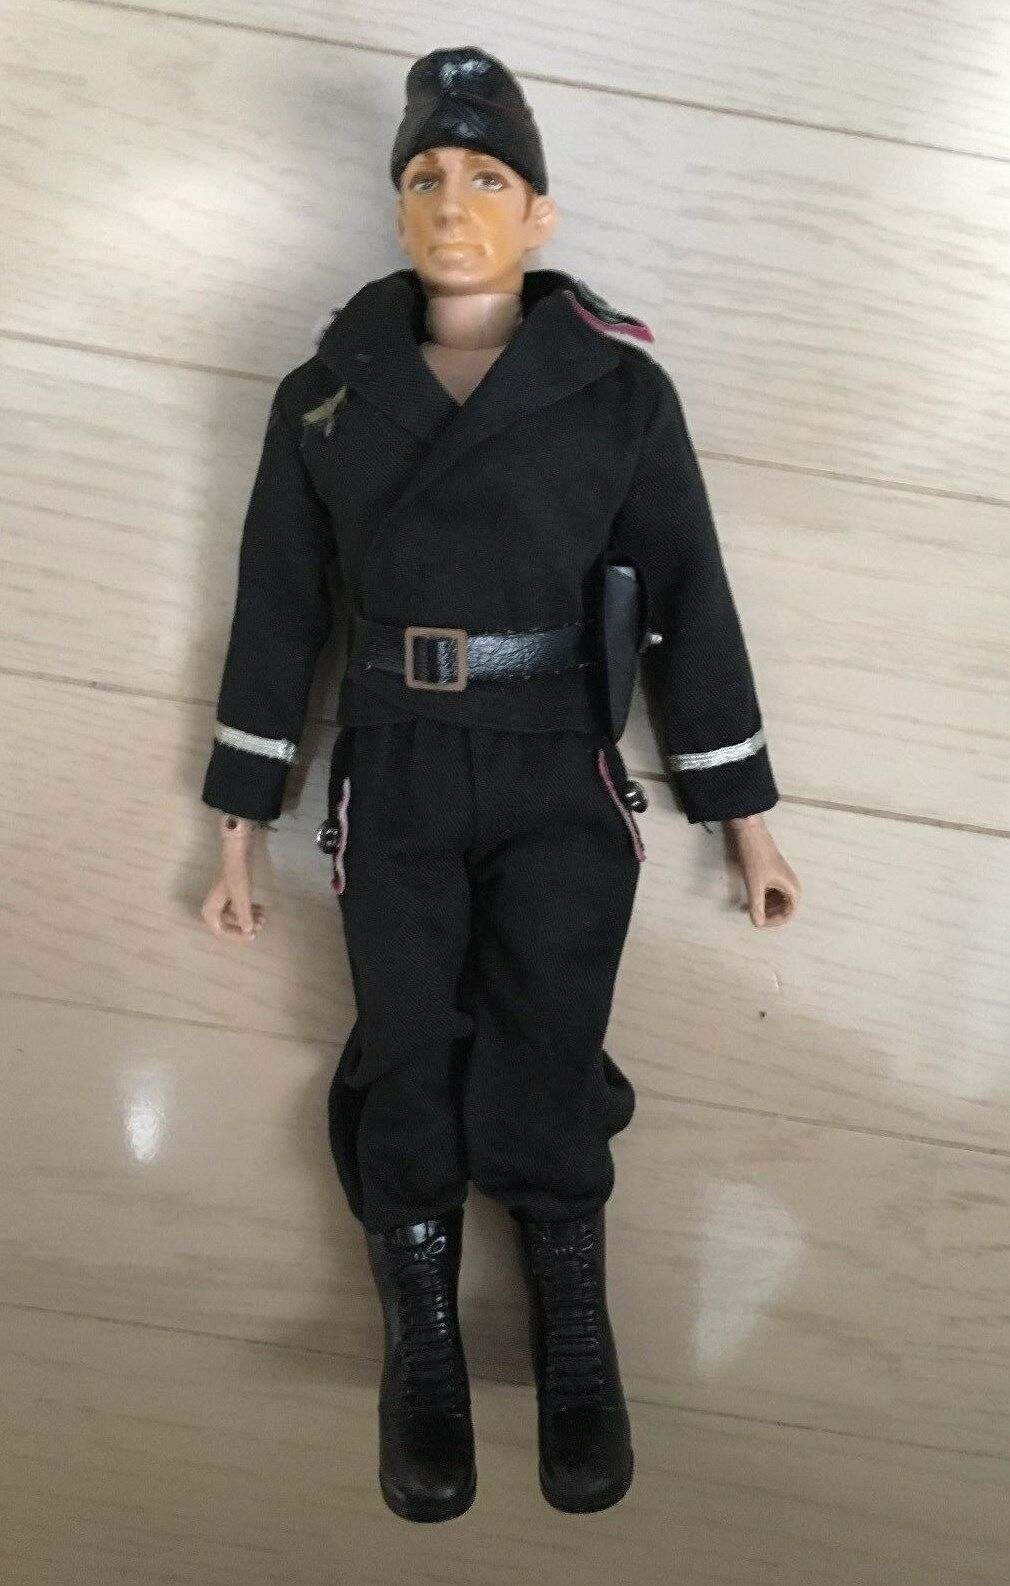 [F014] TAKARA NEW GI JOE HASBRO Vintage Figure W o box German Tank commander VG